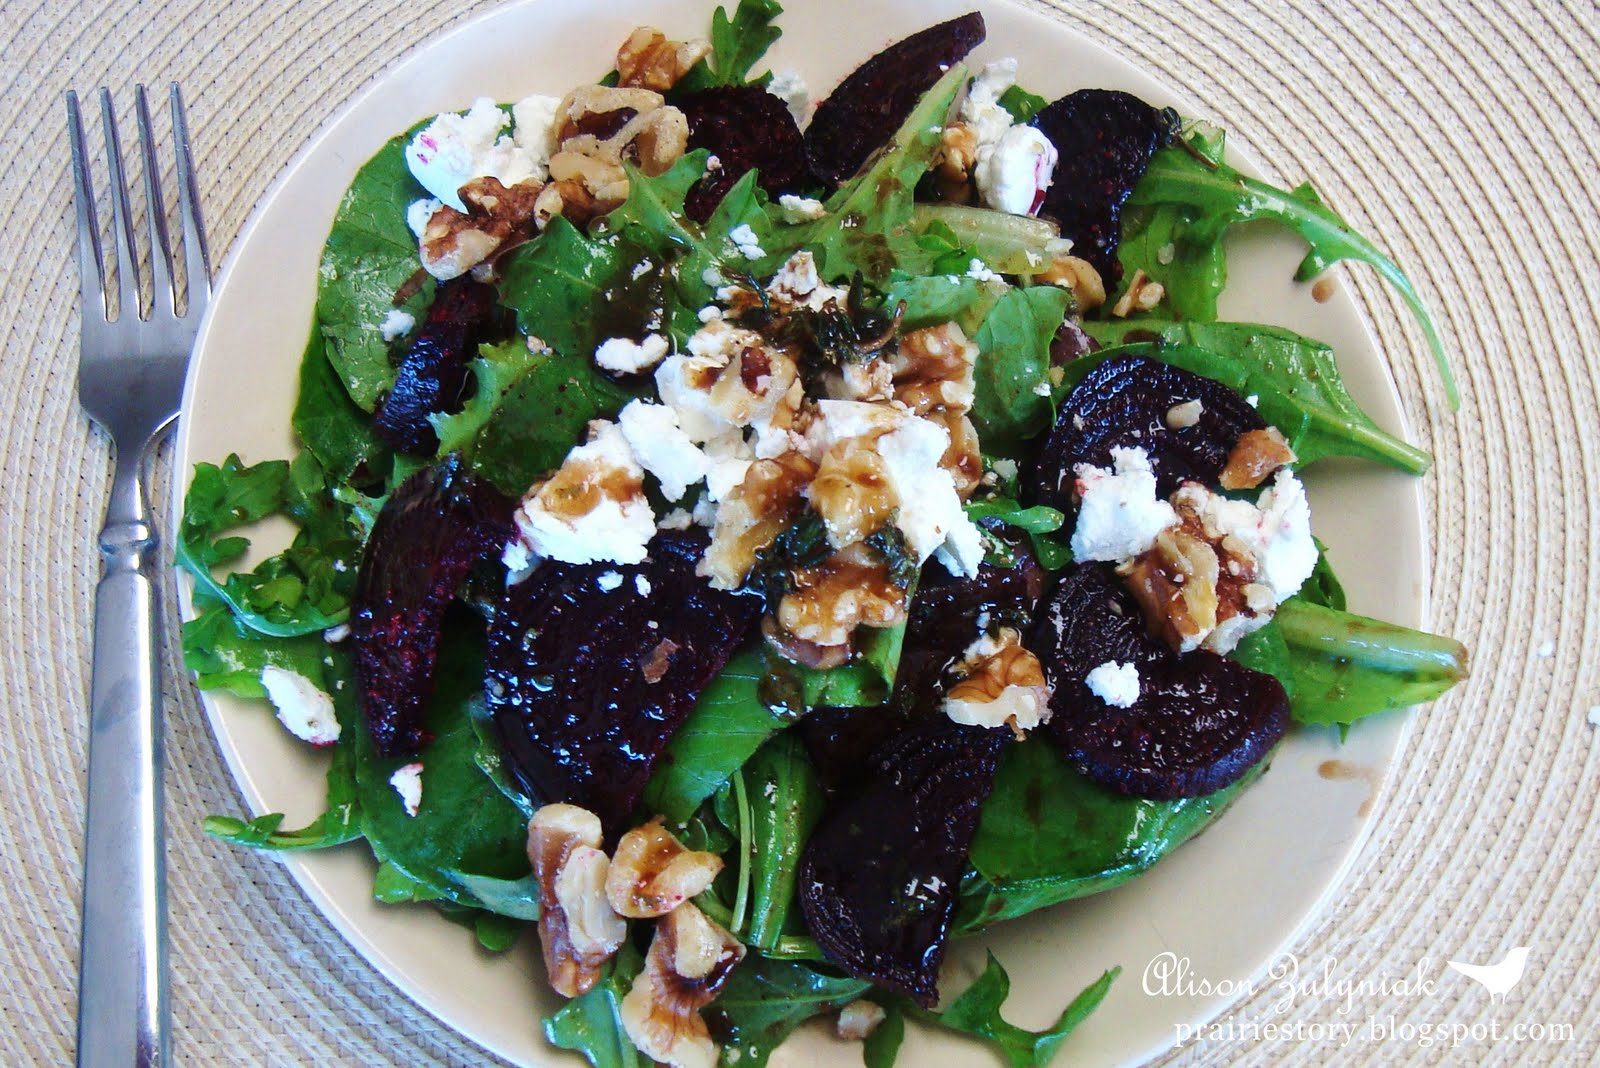 ... roasted beets, chevre, walnuts and the Maple Balsamic Vinaigrette. YUM